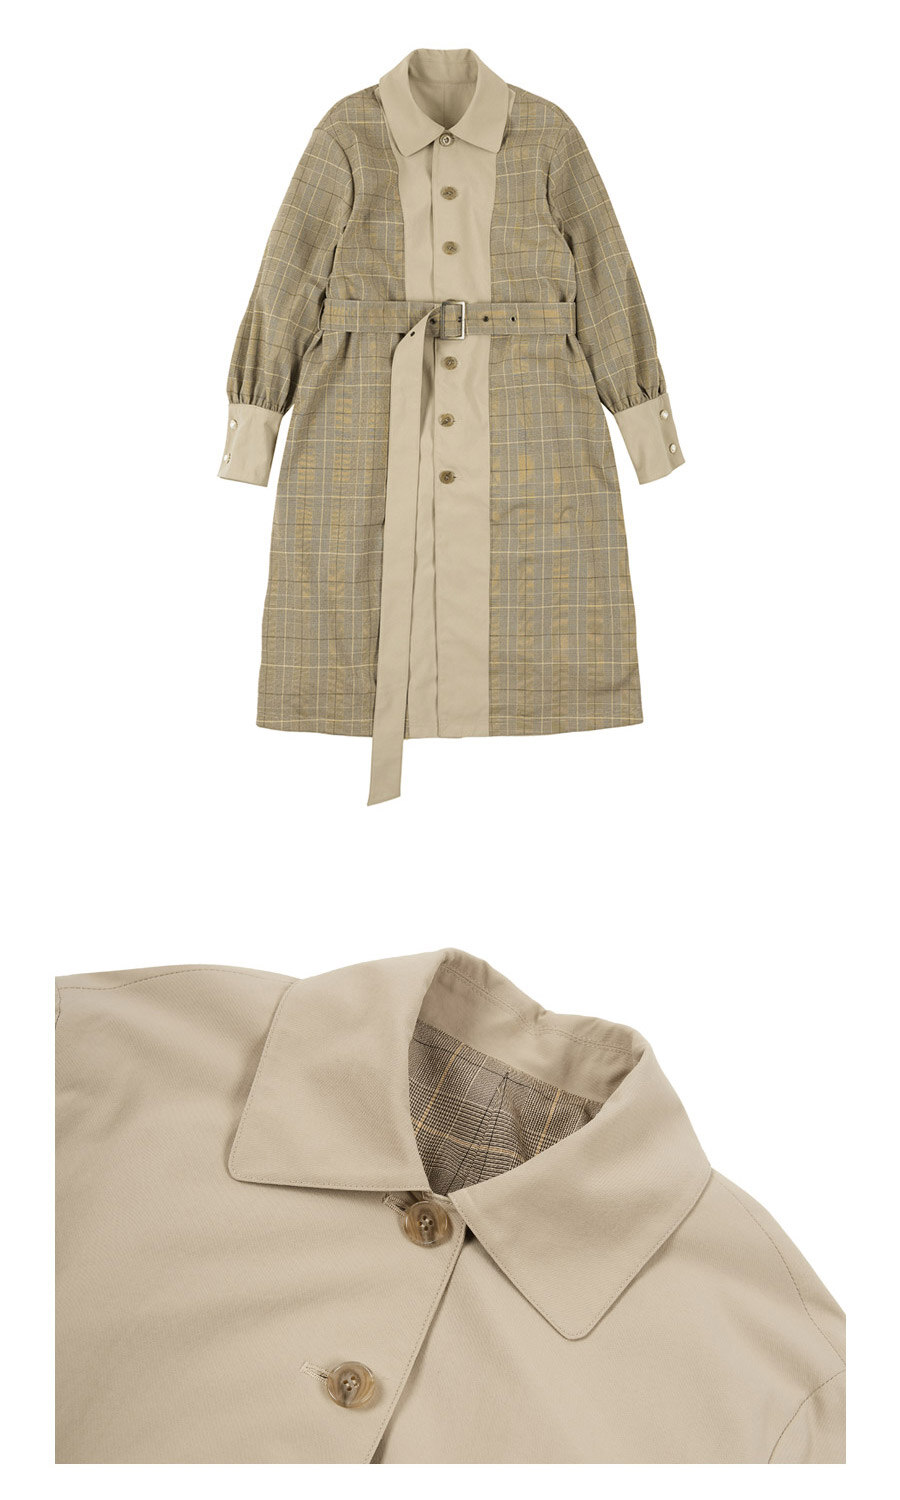 레이브(RAIVE) Puff Sleeve Trench Coat (Beige+Check)_VW8AR0120